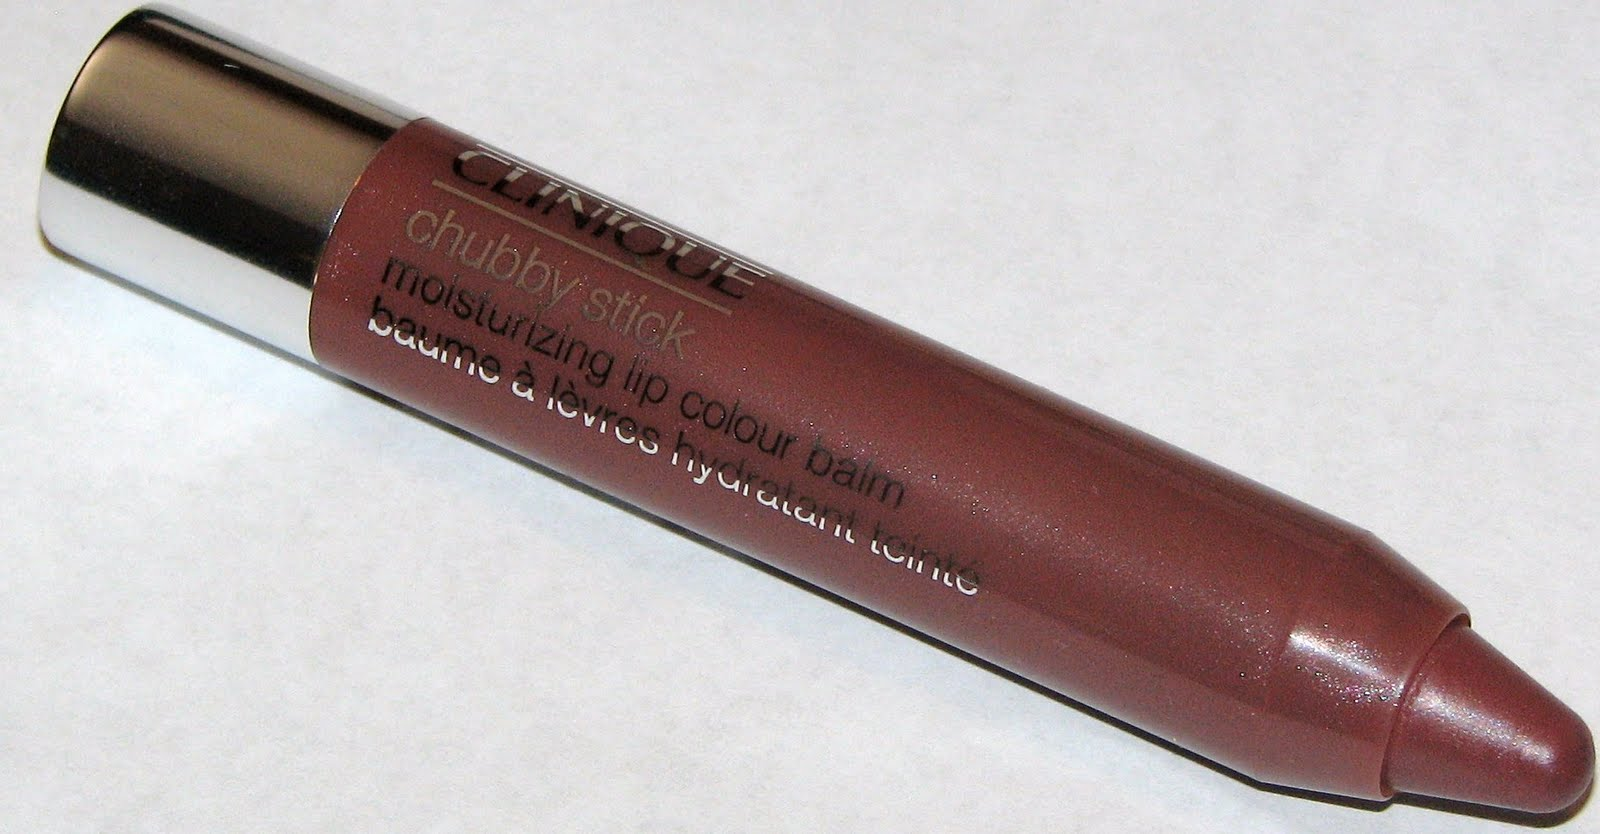 Chubby stick vanille brownie clinique